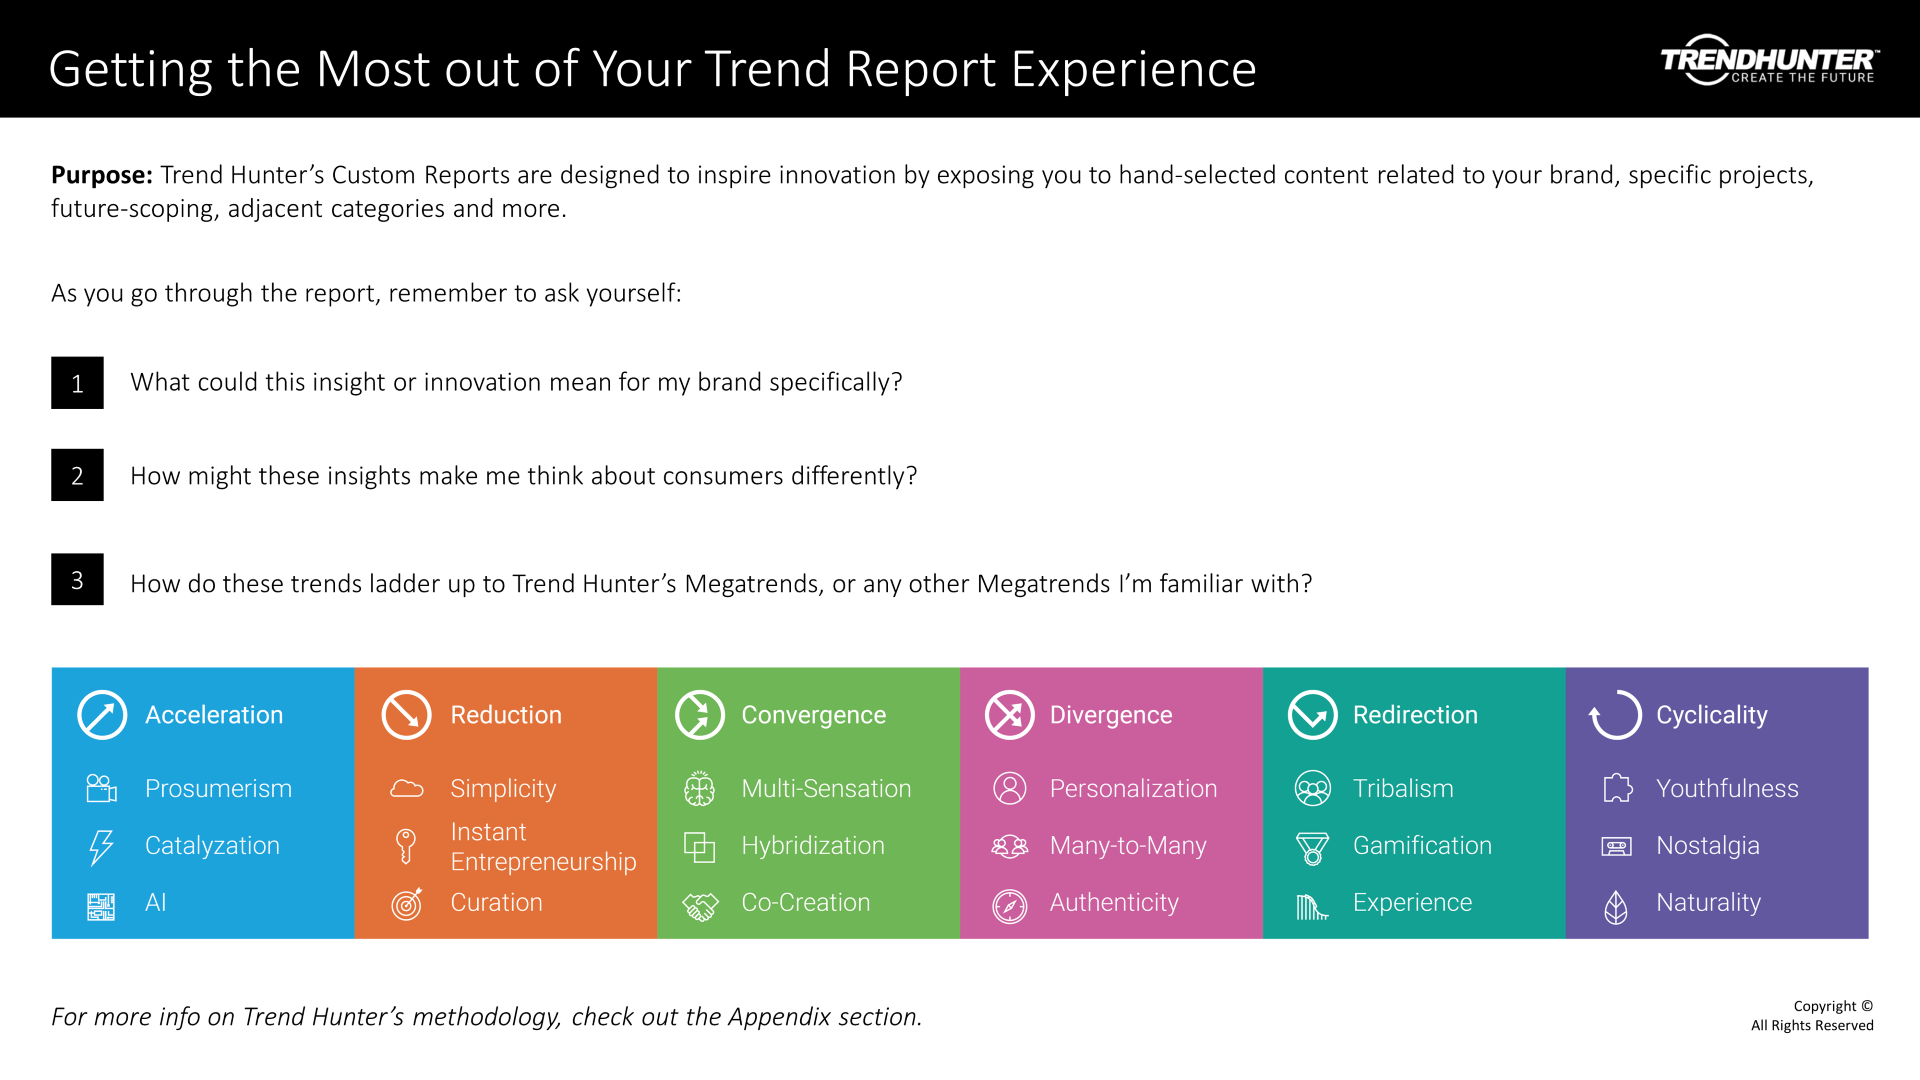 Image Slide: Get the most out of your Trend Hunter experience